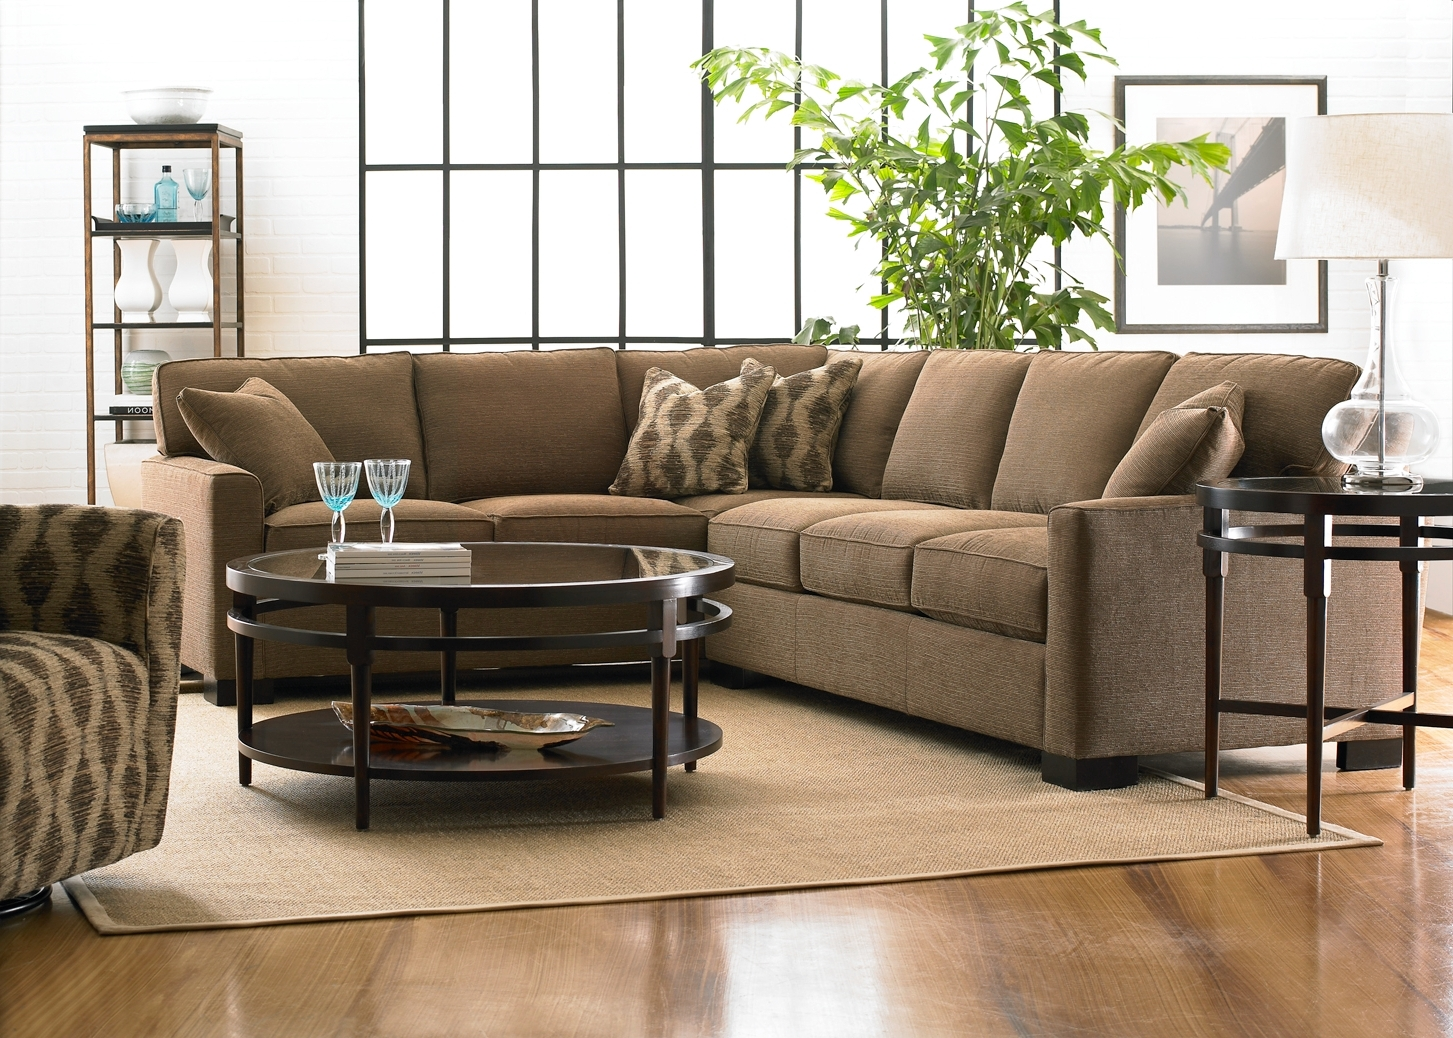 Small Spaces Sectional Sofas Regarding Widely Used Reclining Sectional Sofas For Small Spaces (View 10 of 15)